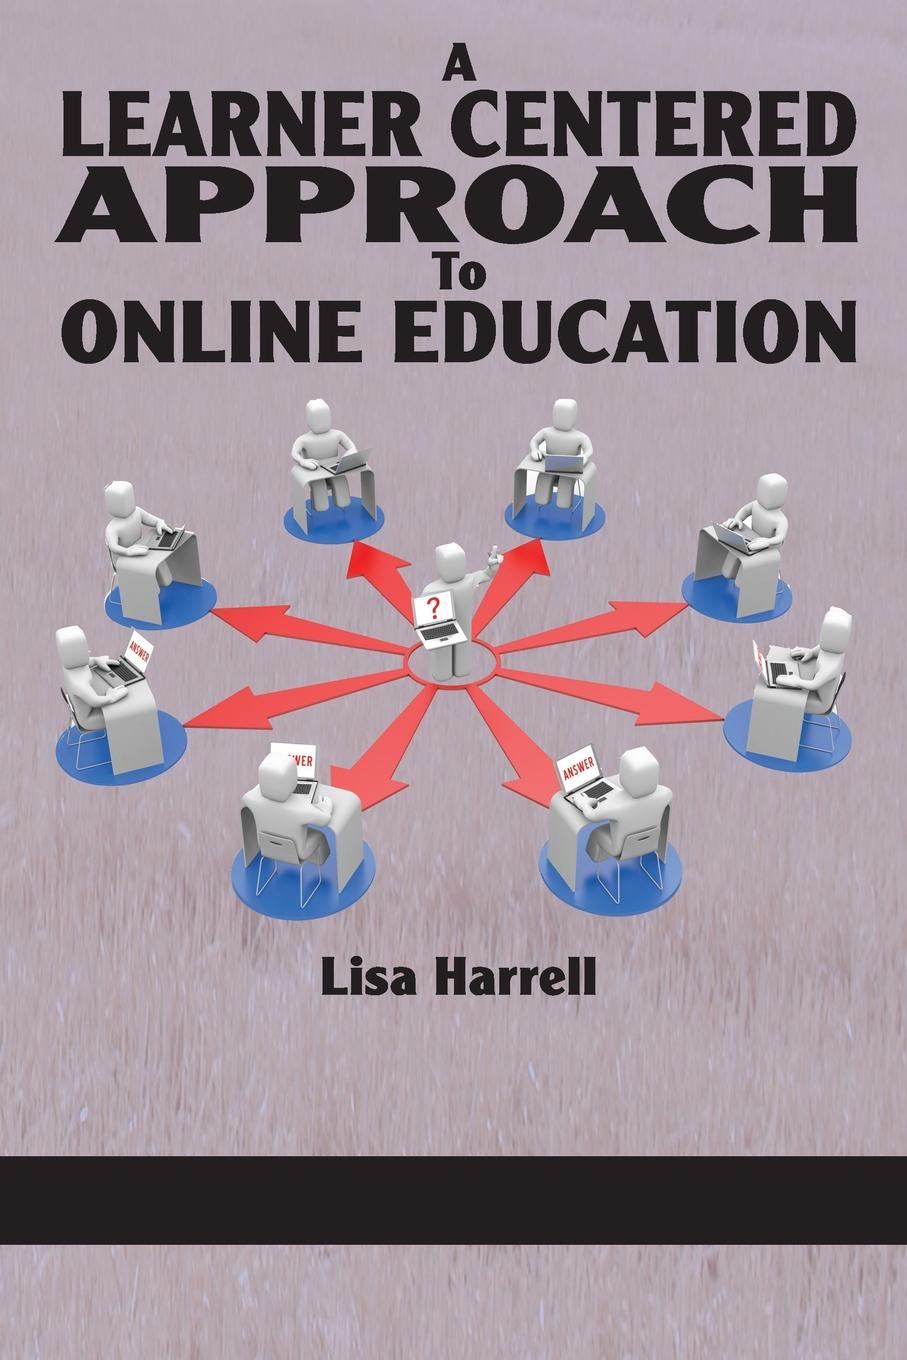 Lisa Harrell A Learner Centered Approach to Online Education torria davis visual design for online learning